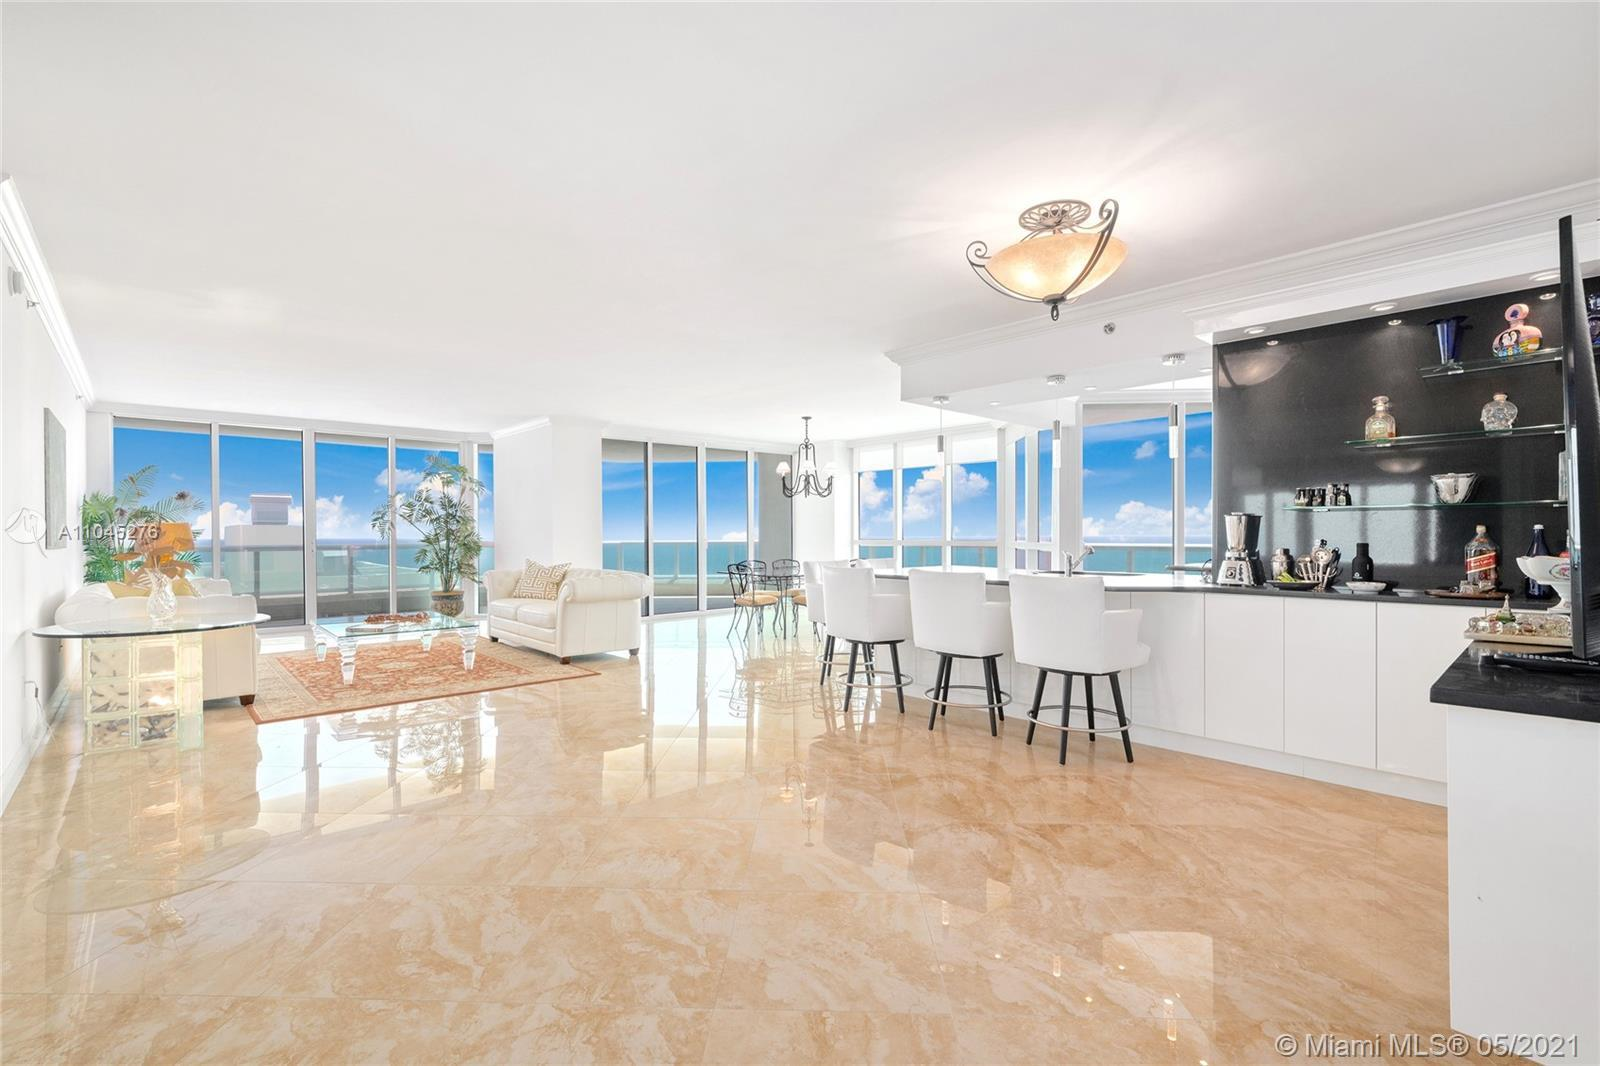 Located in one of the most luxurious oceanfront buildings in Fort Lauderdale, this 2,950 sqft condo